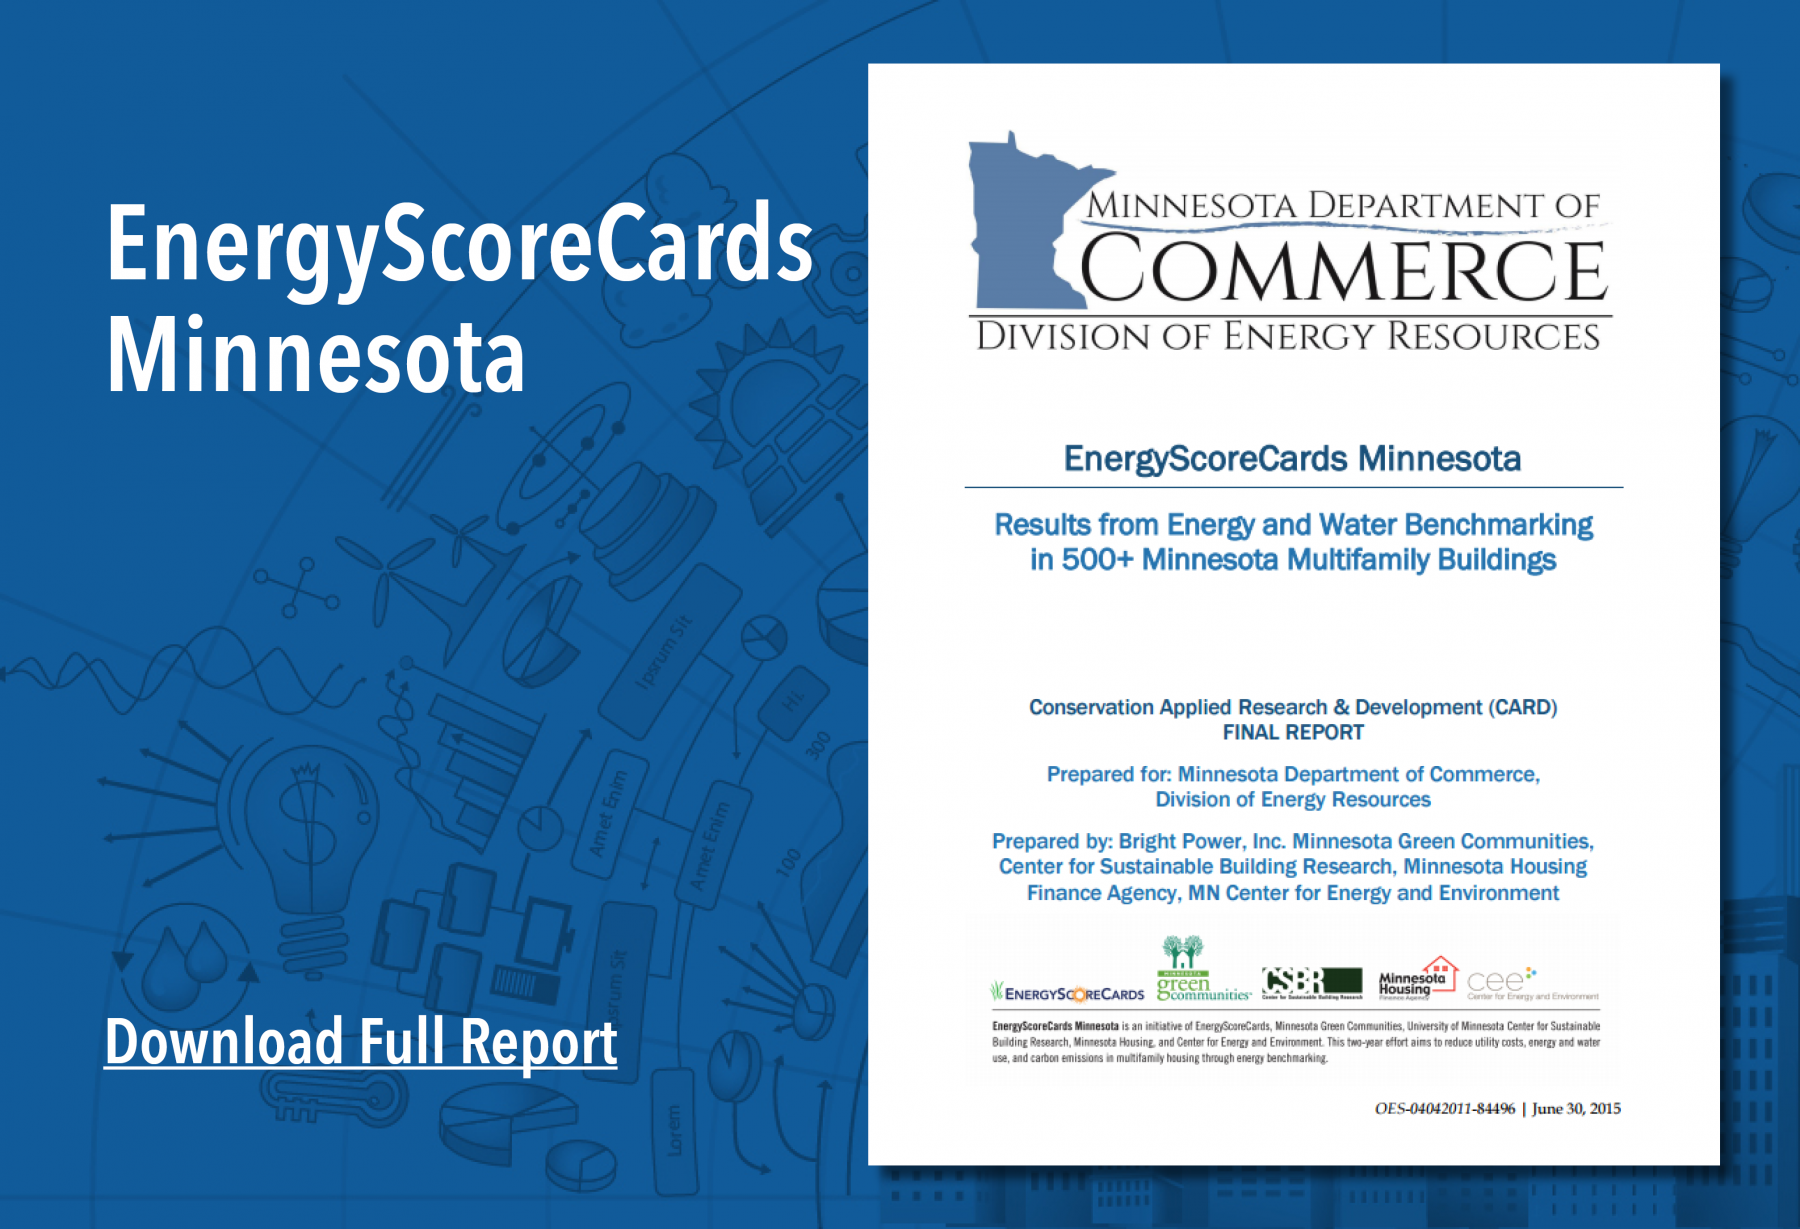 EnergyScoreCards Minnesota